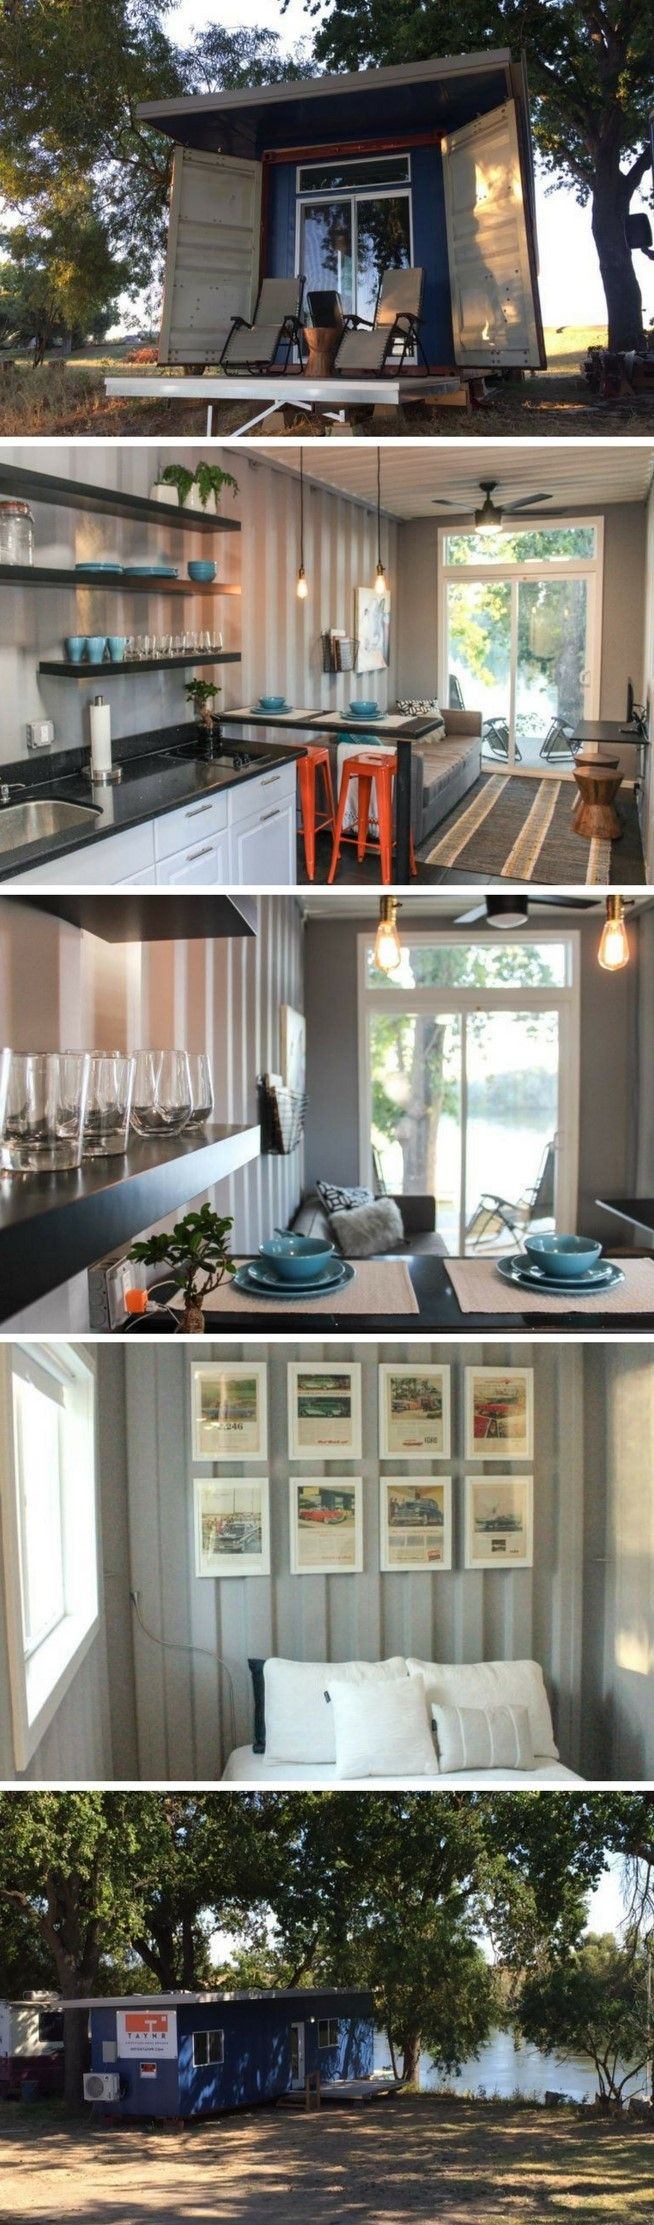 Container house container house u modern shipping container